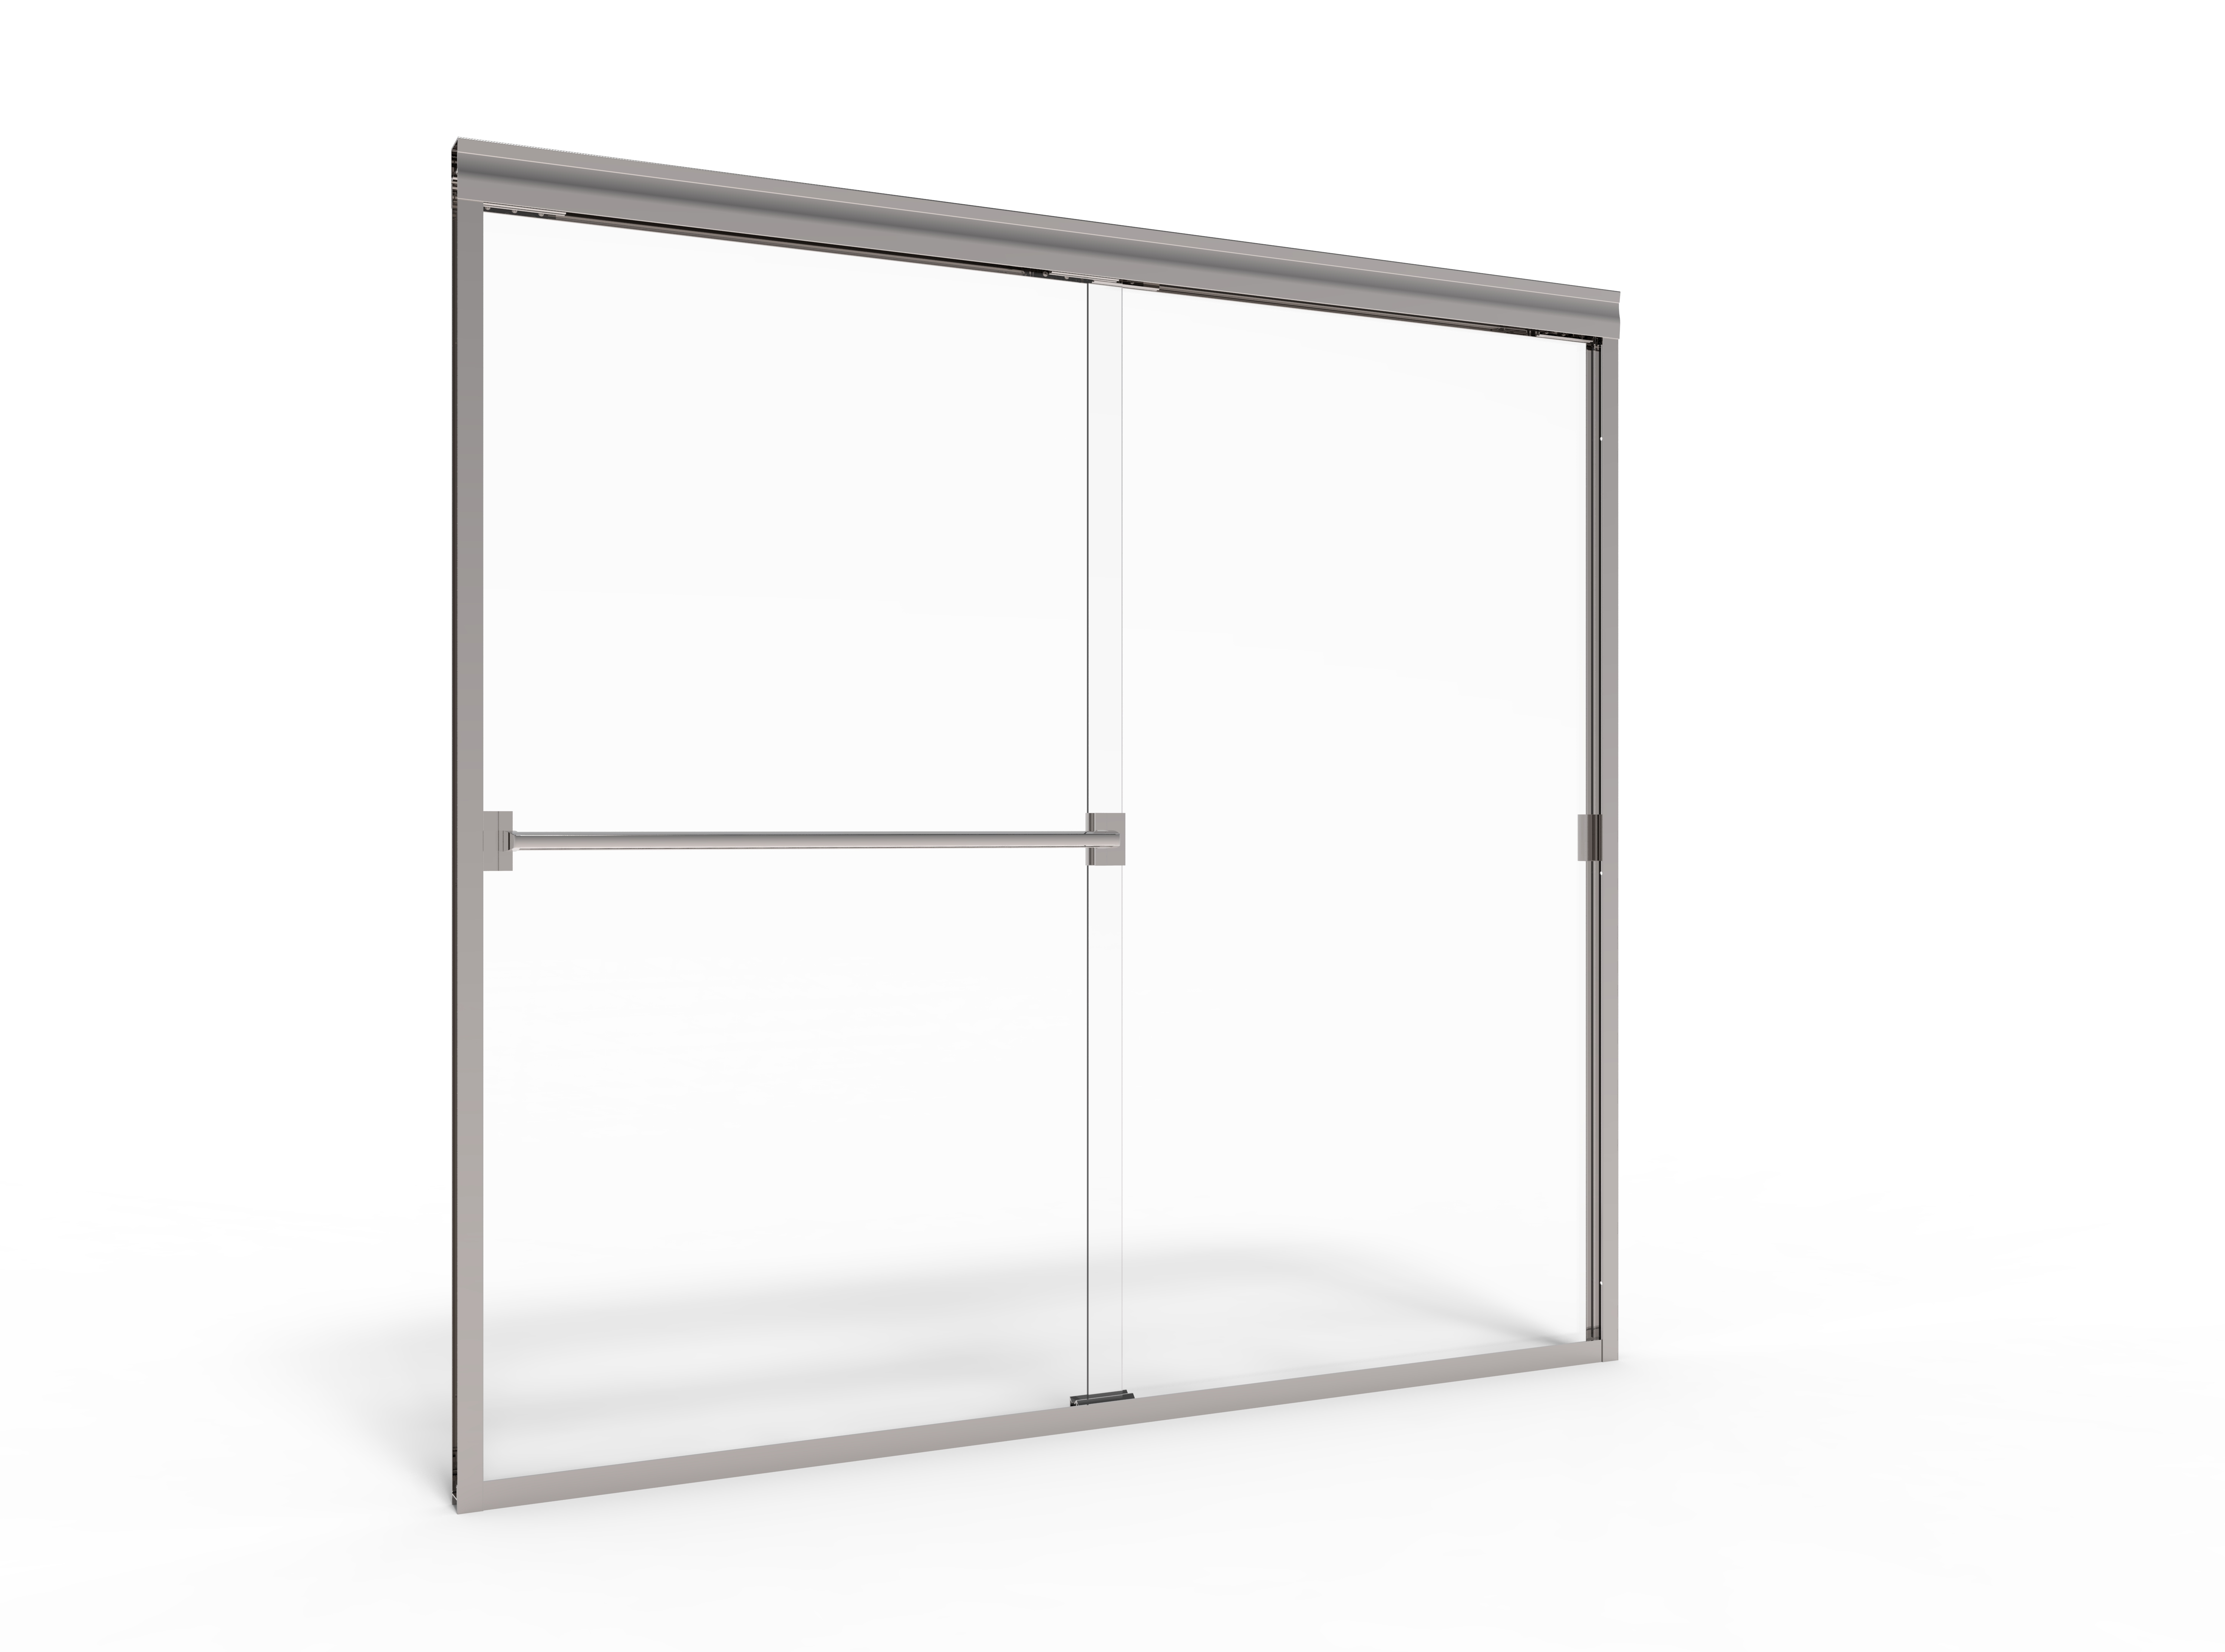 Classic semi frameless 316 inch glass sliding basco shower doors 5918 jeuxipadfo Image collections